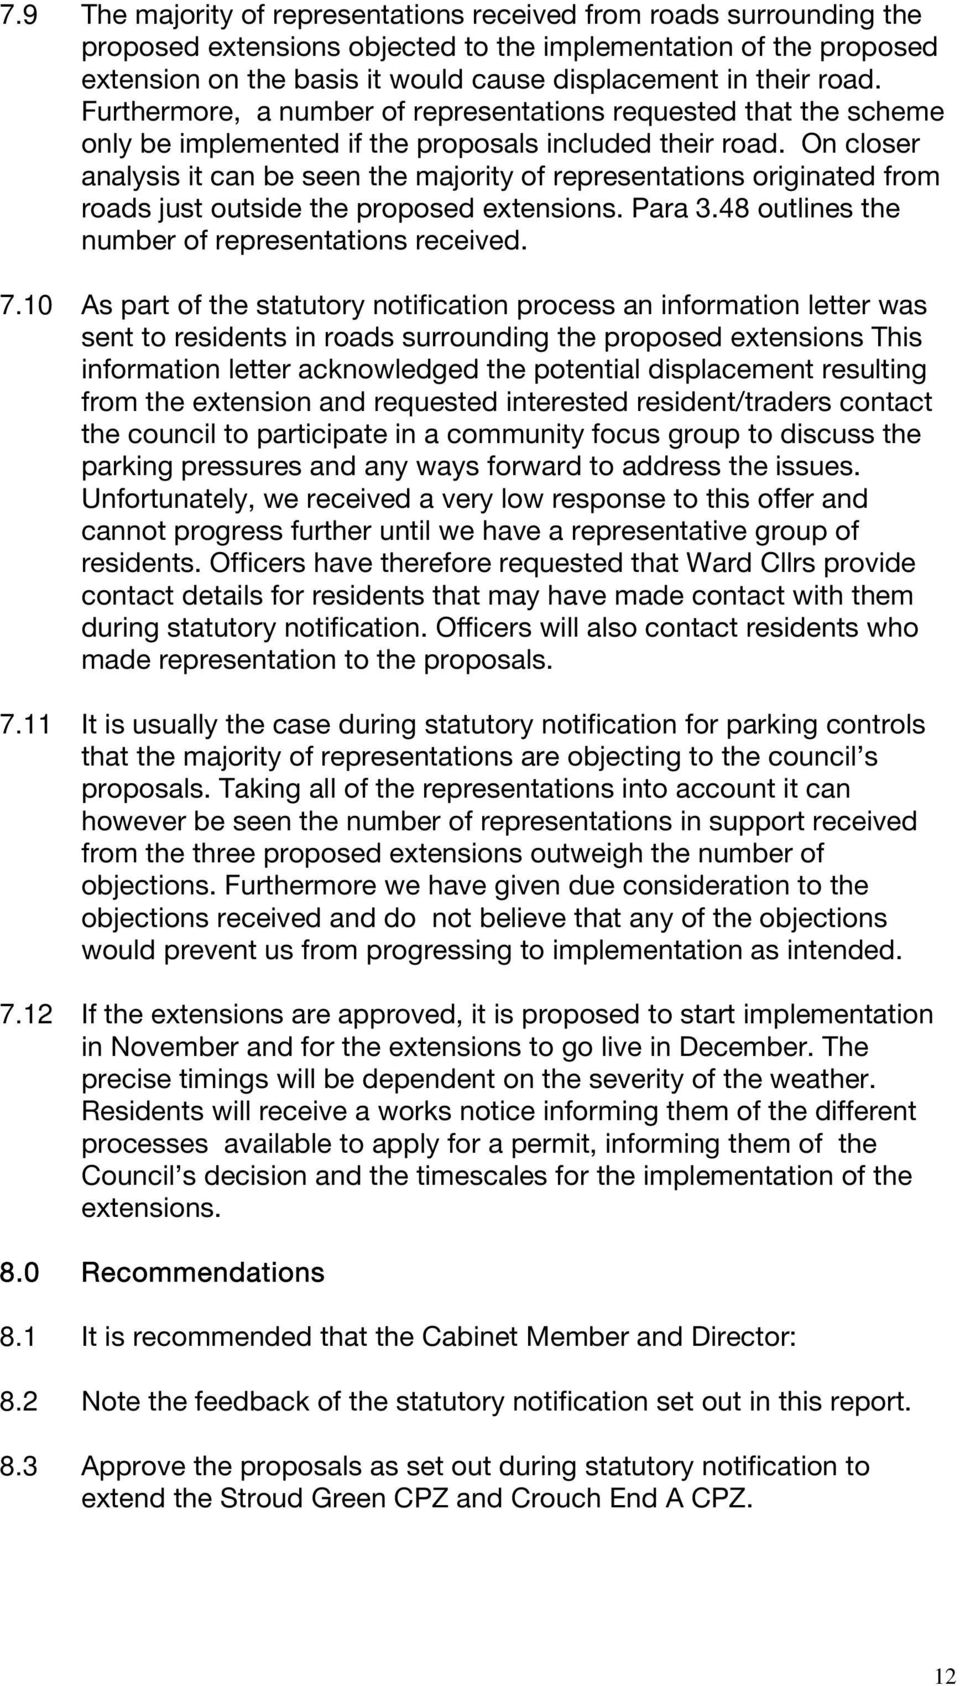 On closer analysis it can be seen the majority of representations originated from roads just outside the proposed extensions. Para 3.48 outlines the number of representations received. 7.